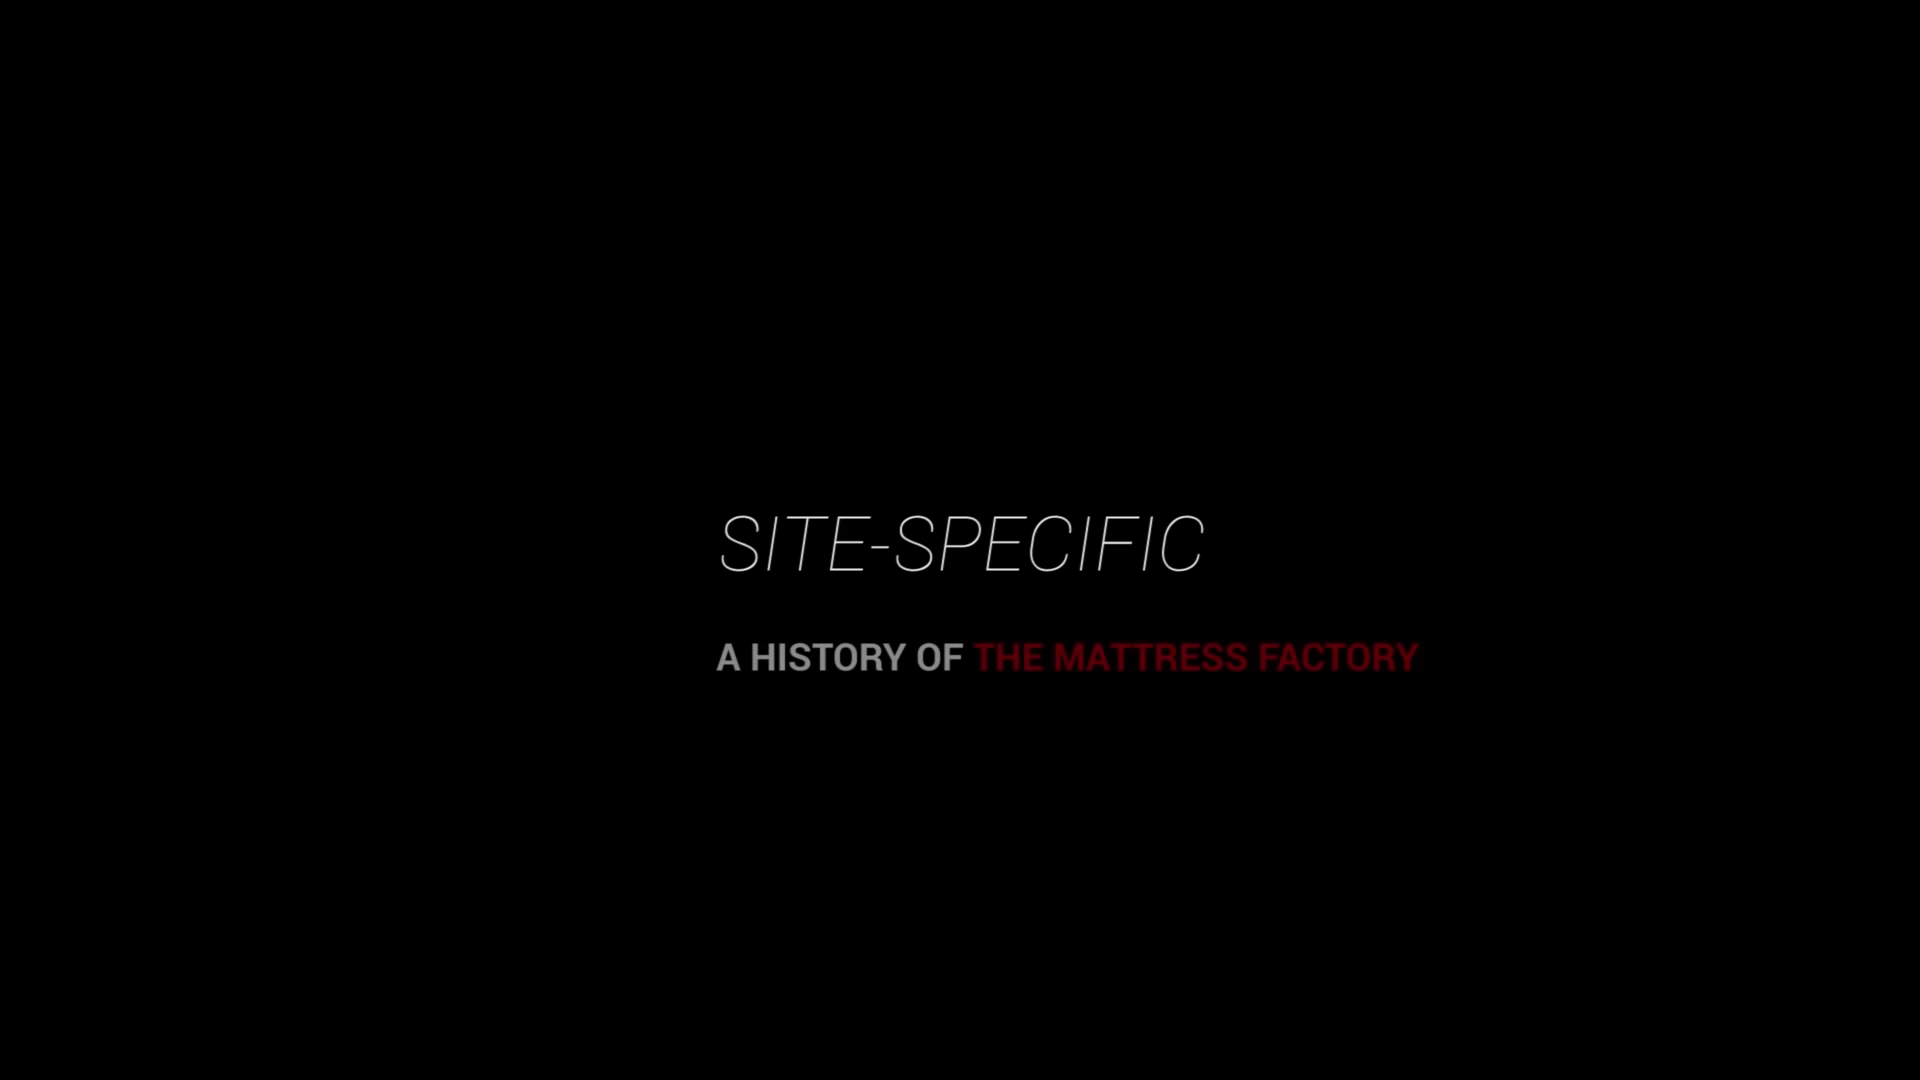 Tickets for Site-Specific: A History of the Mattress Factory in Pittsburgh from ShowClix